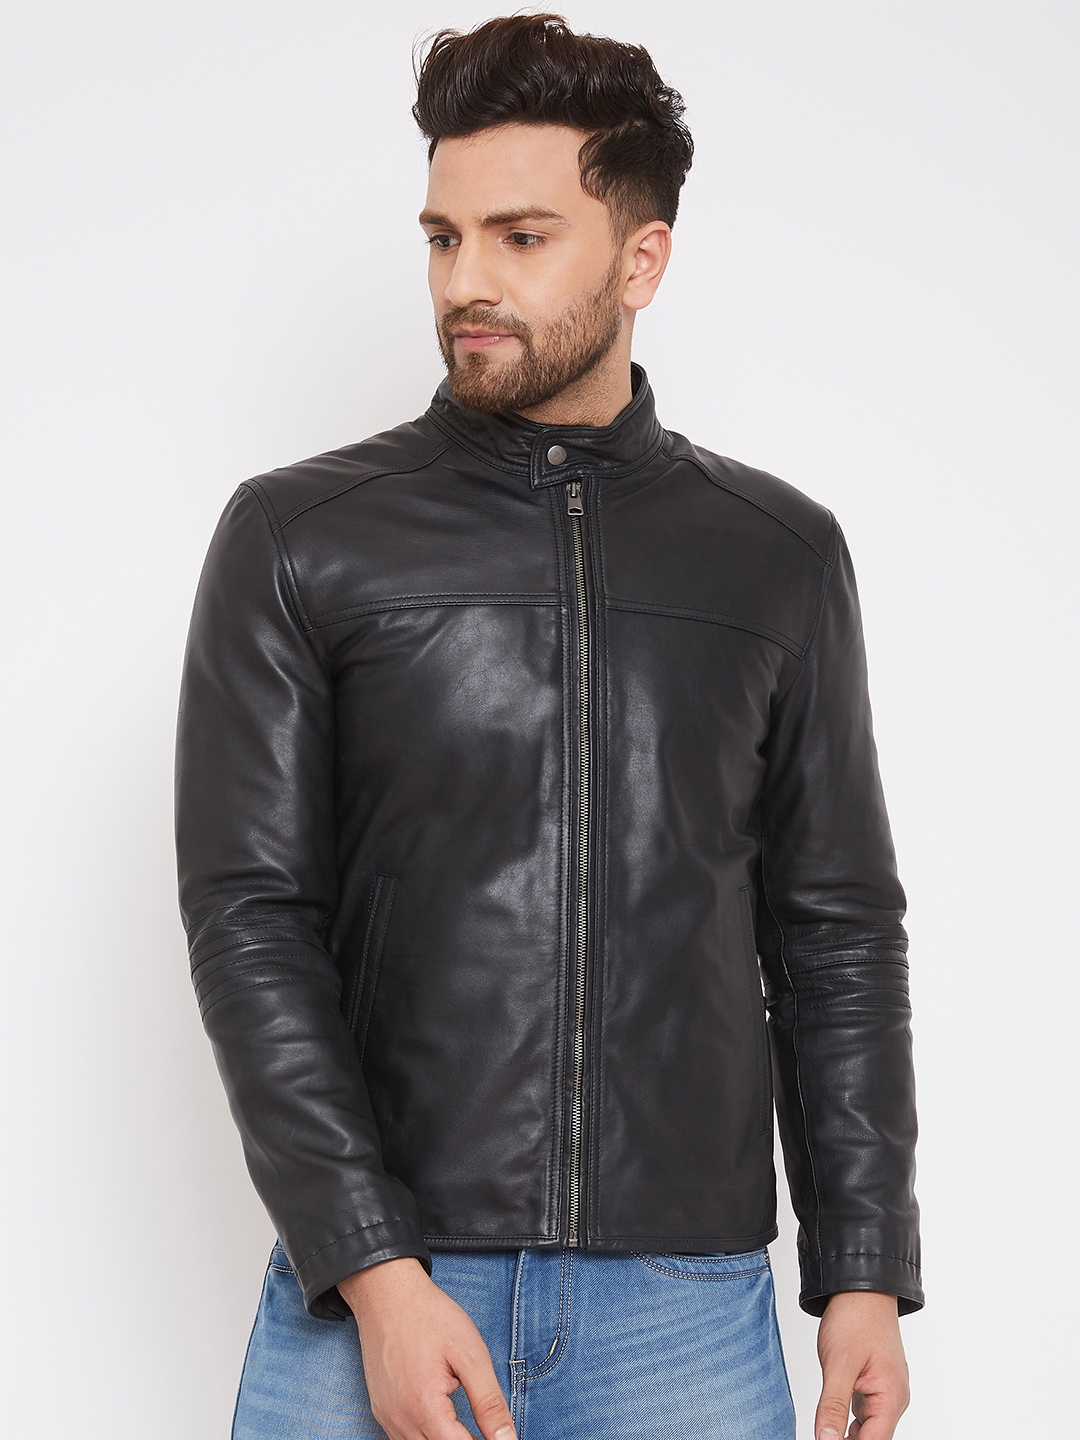 Justanned | JUSTANNED MEN GENUINE REAL LEATHER JACKET